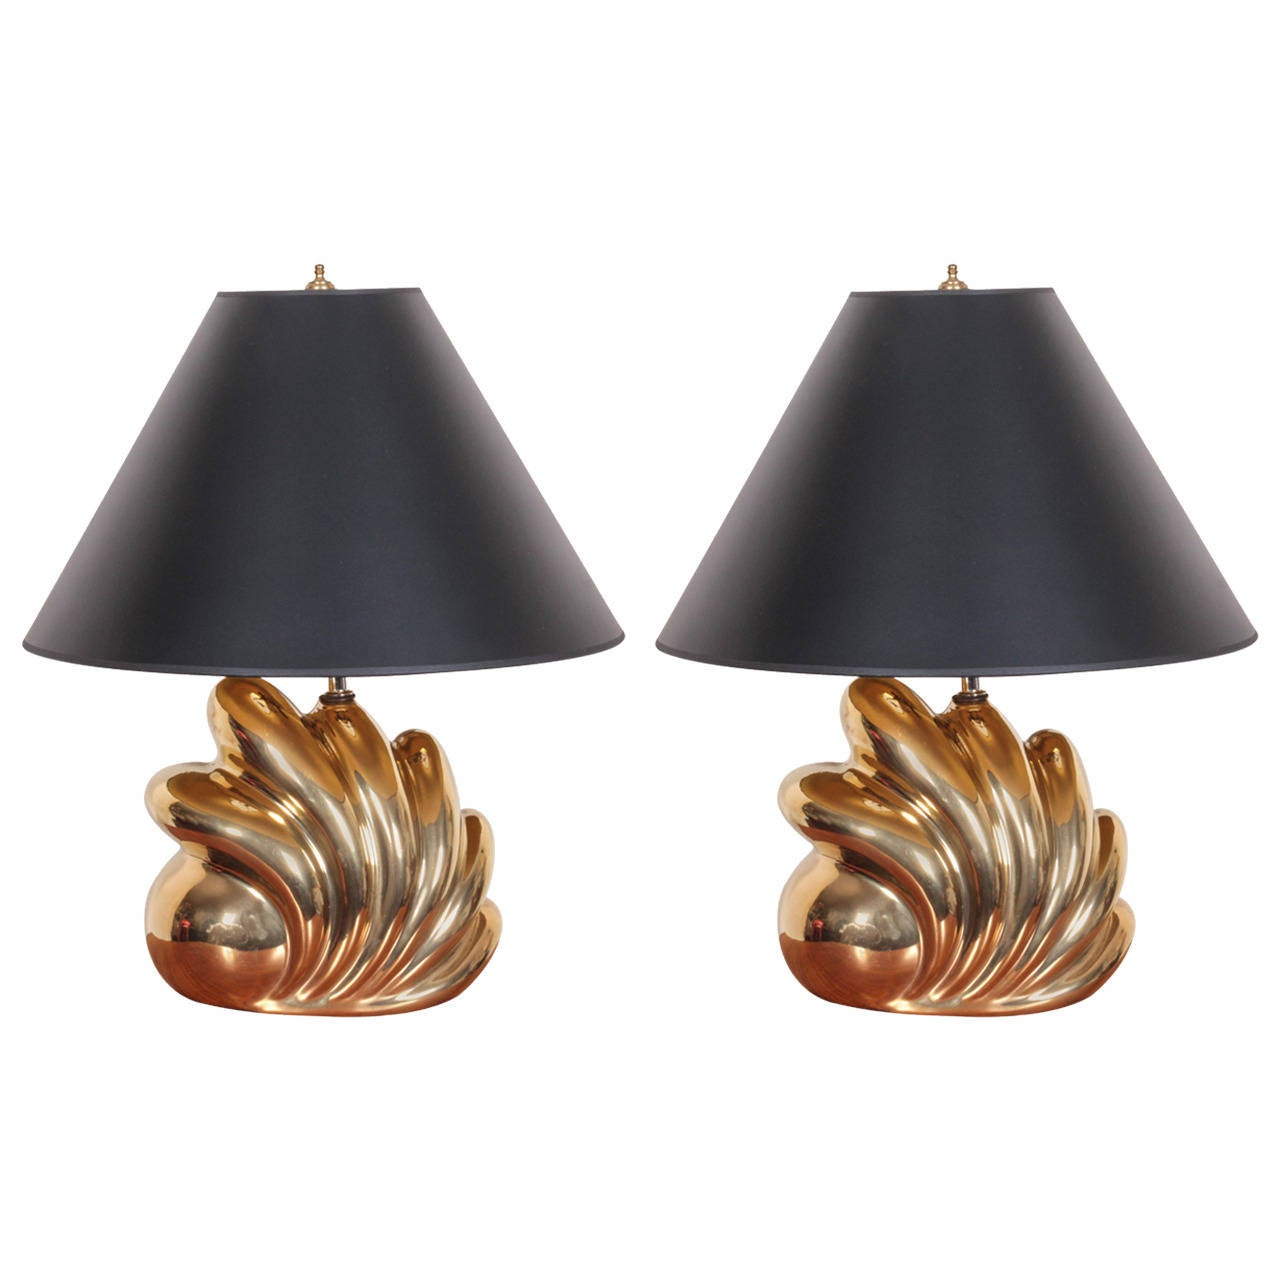 Pair of Decorative Gold Luster Shell Lamps